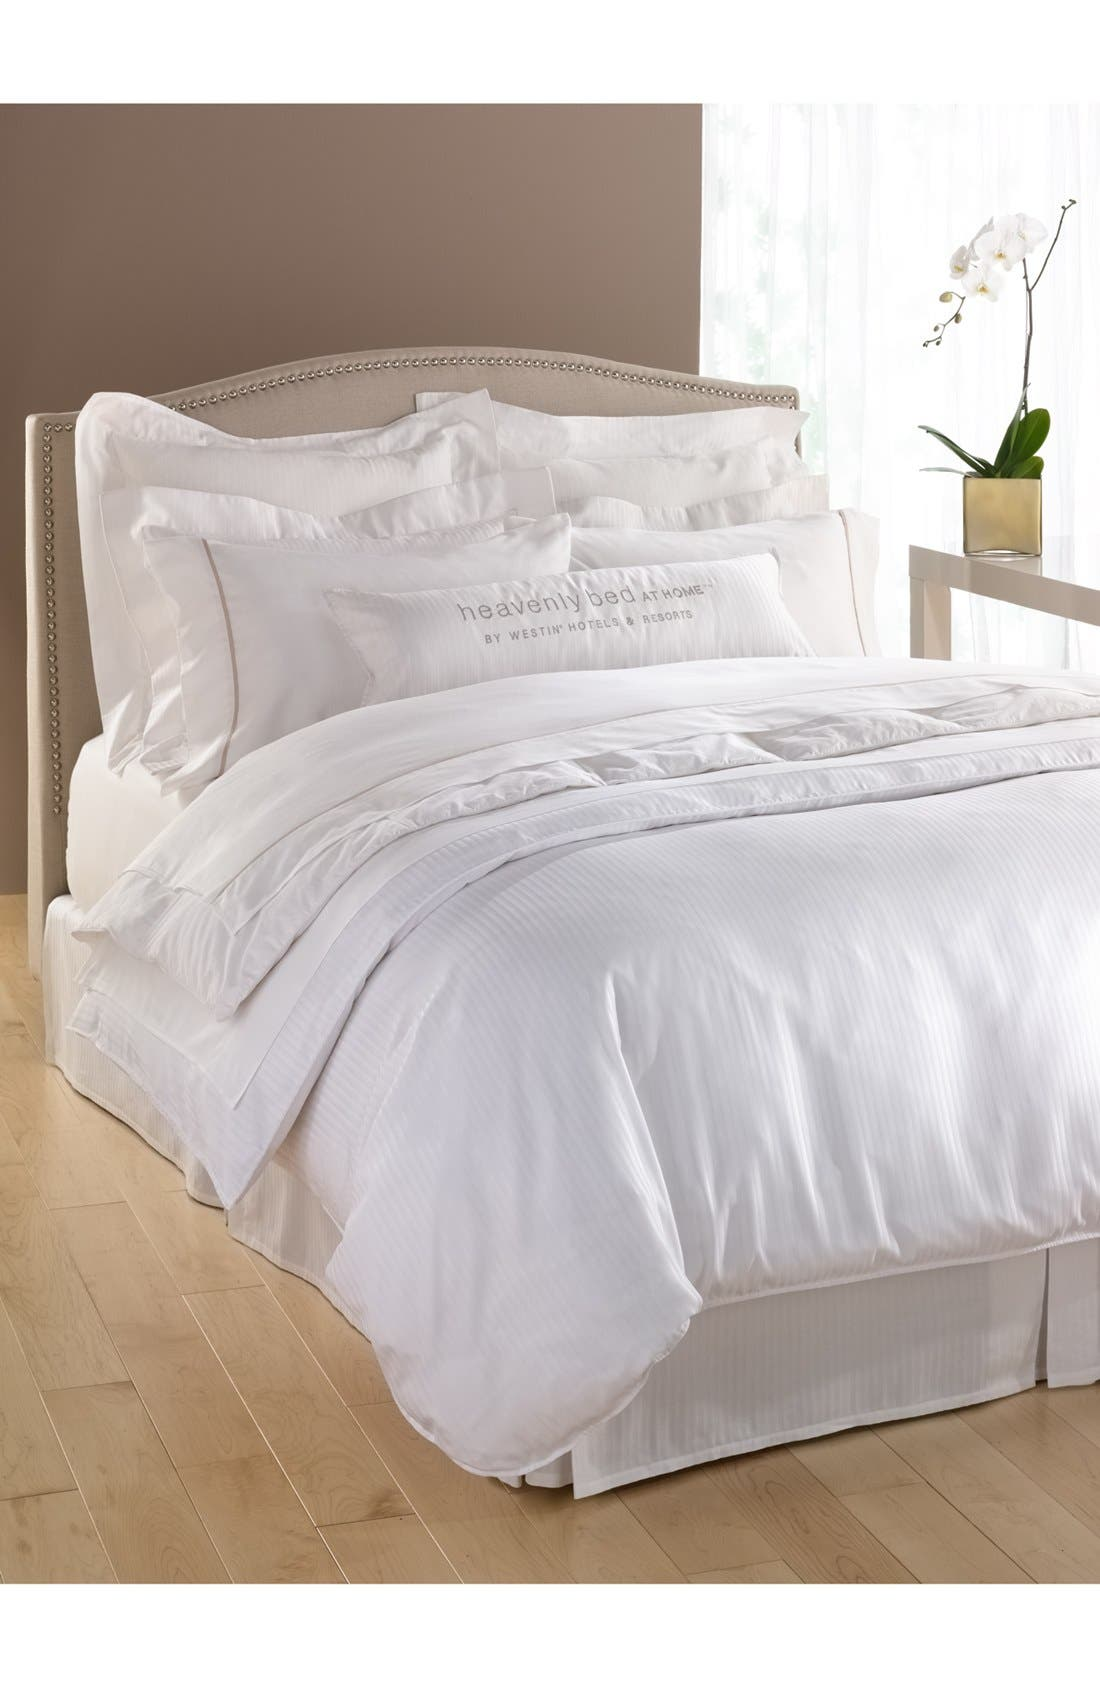 'Ultra Luxe' 600 Thread Count Fitted Sheet,                             Alternate thumbnail 2, color,                             100